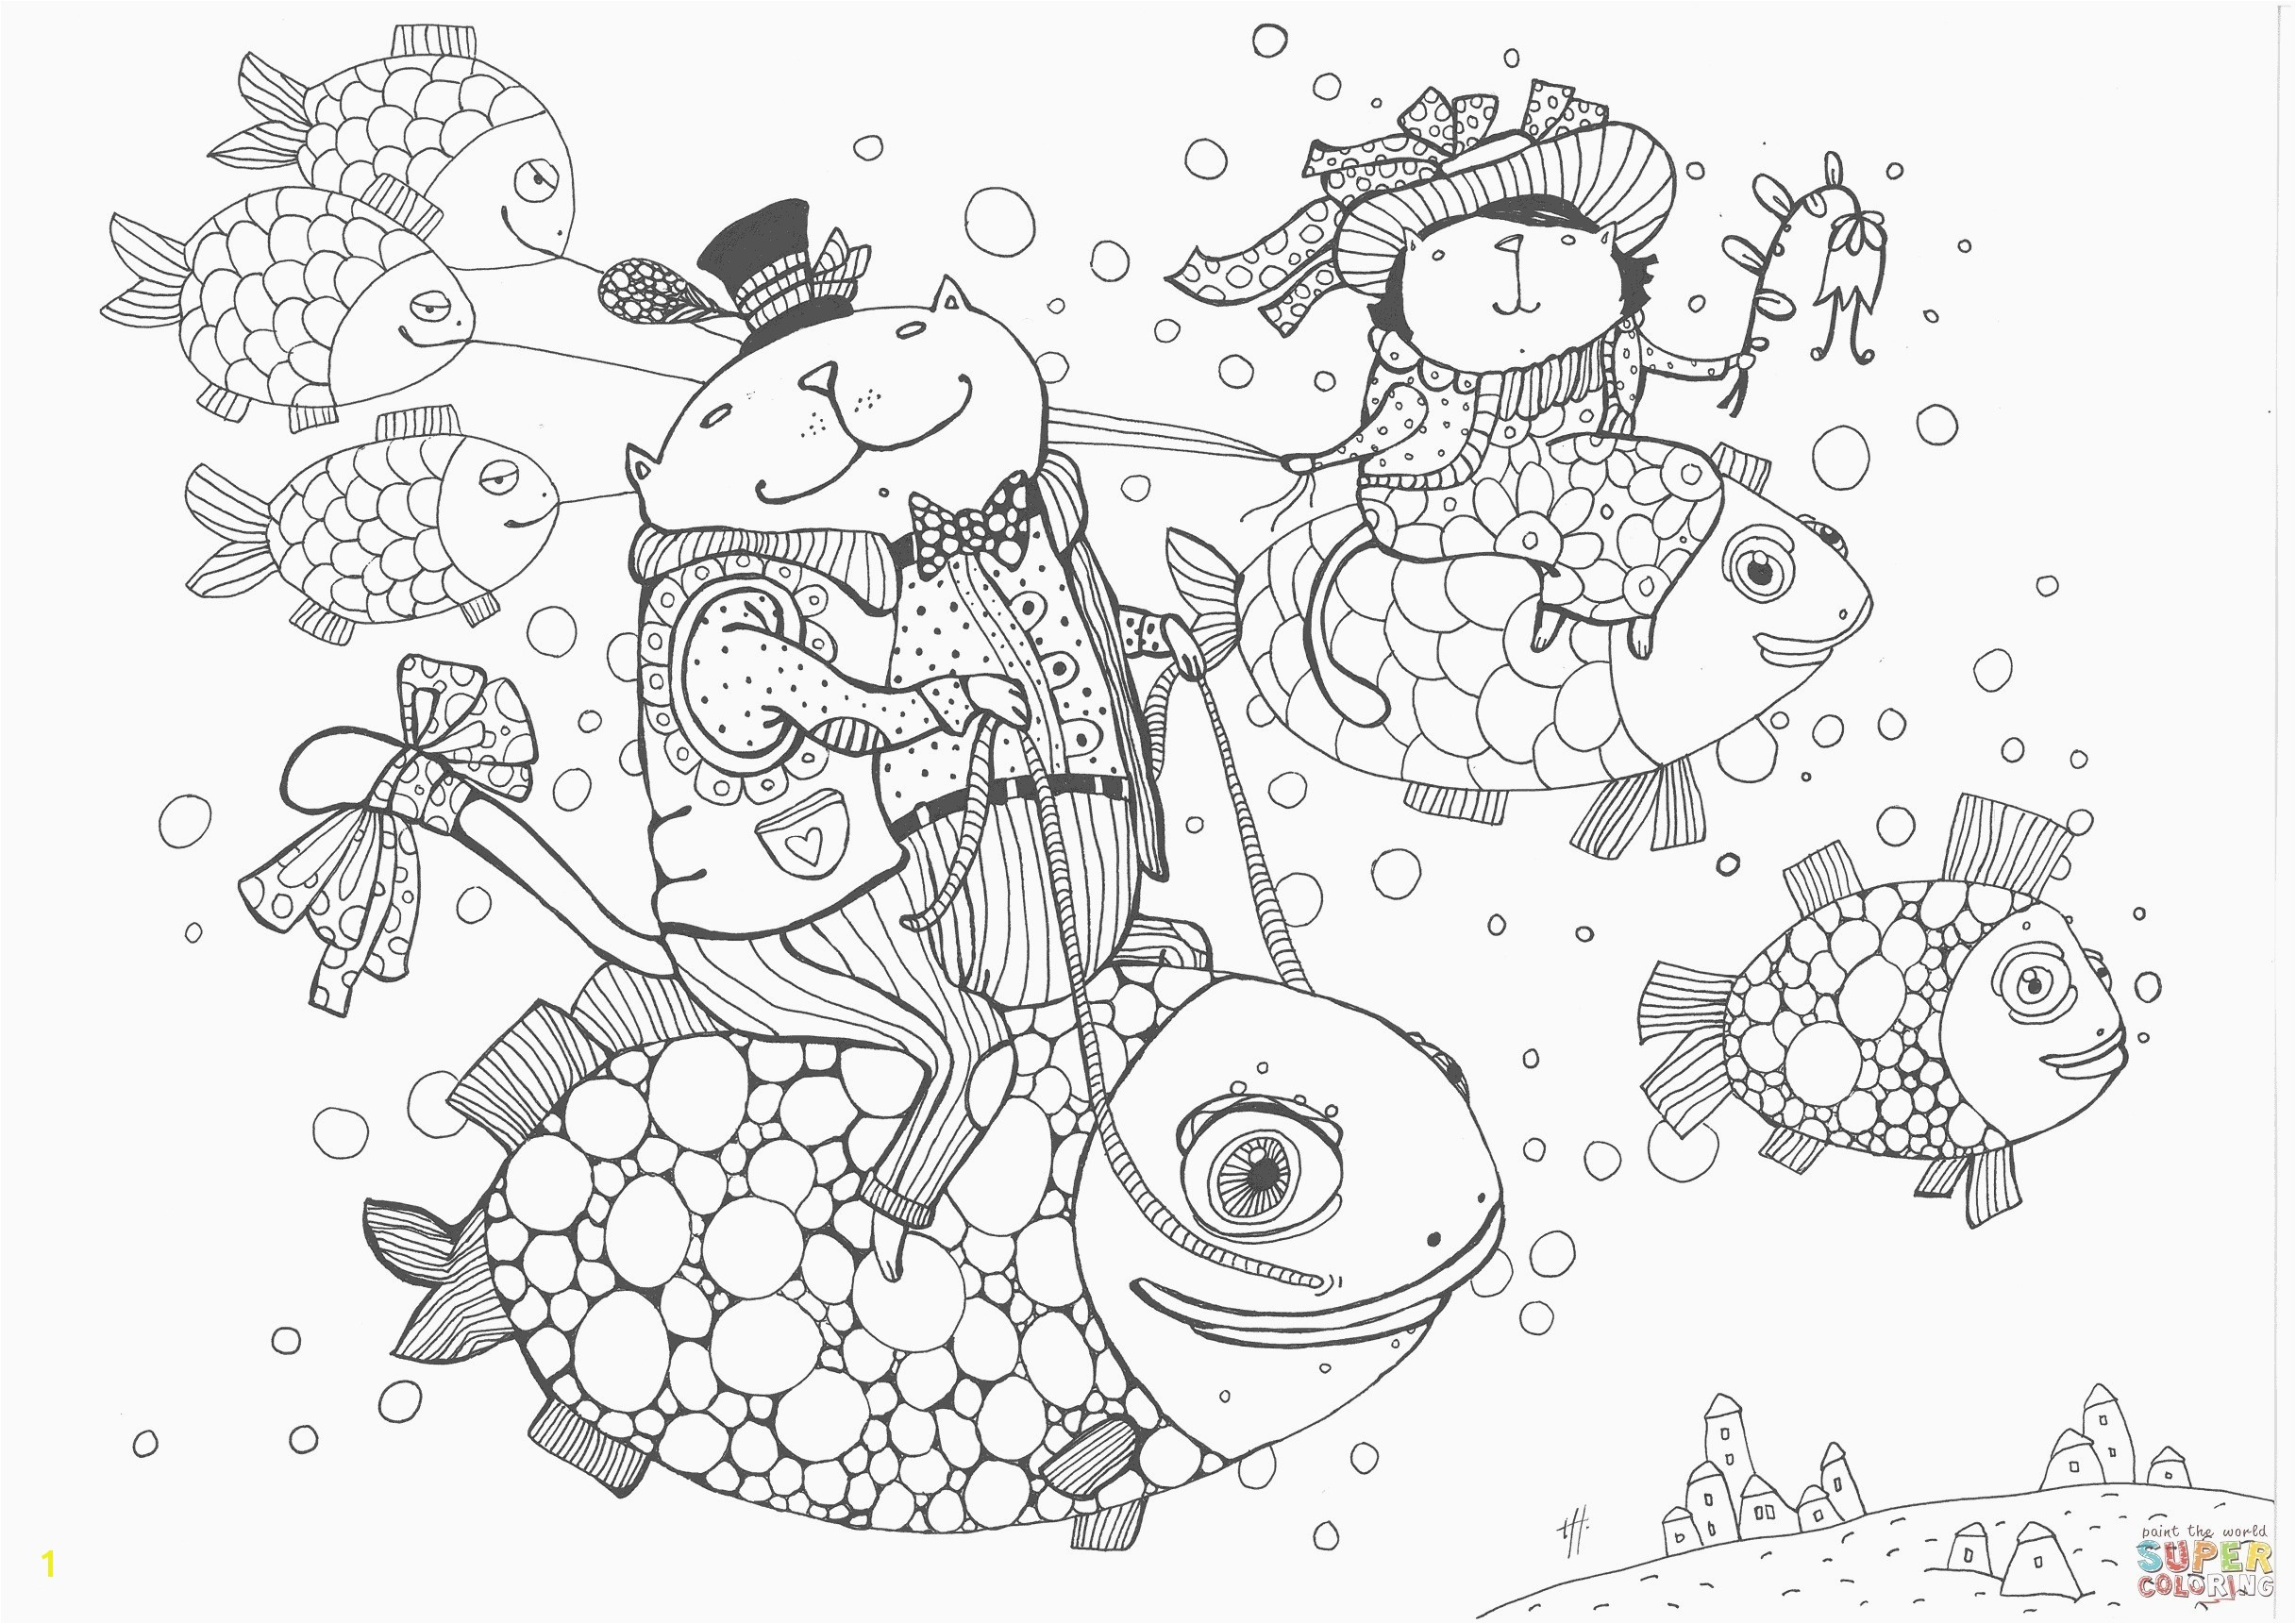 Od Dog Printable Fish Coloring Pages Lovely Puffer Fish Coloring Page Unique 17 Fresh Free Printable Fish